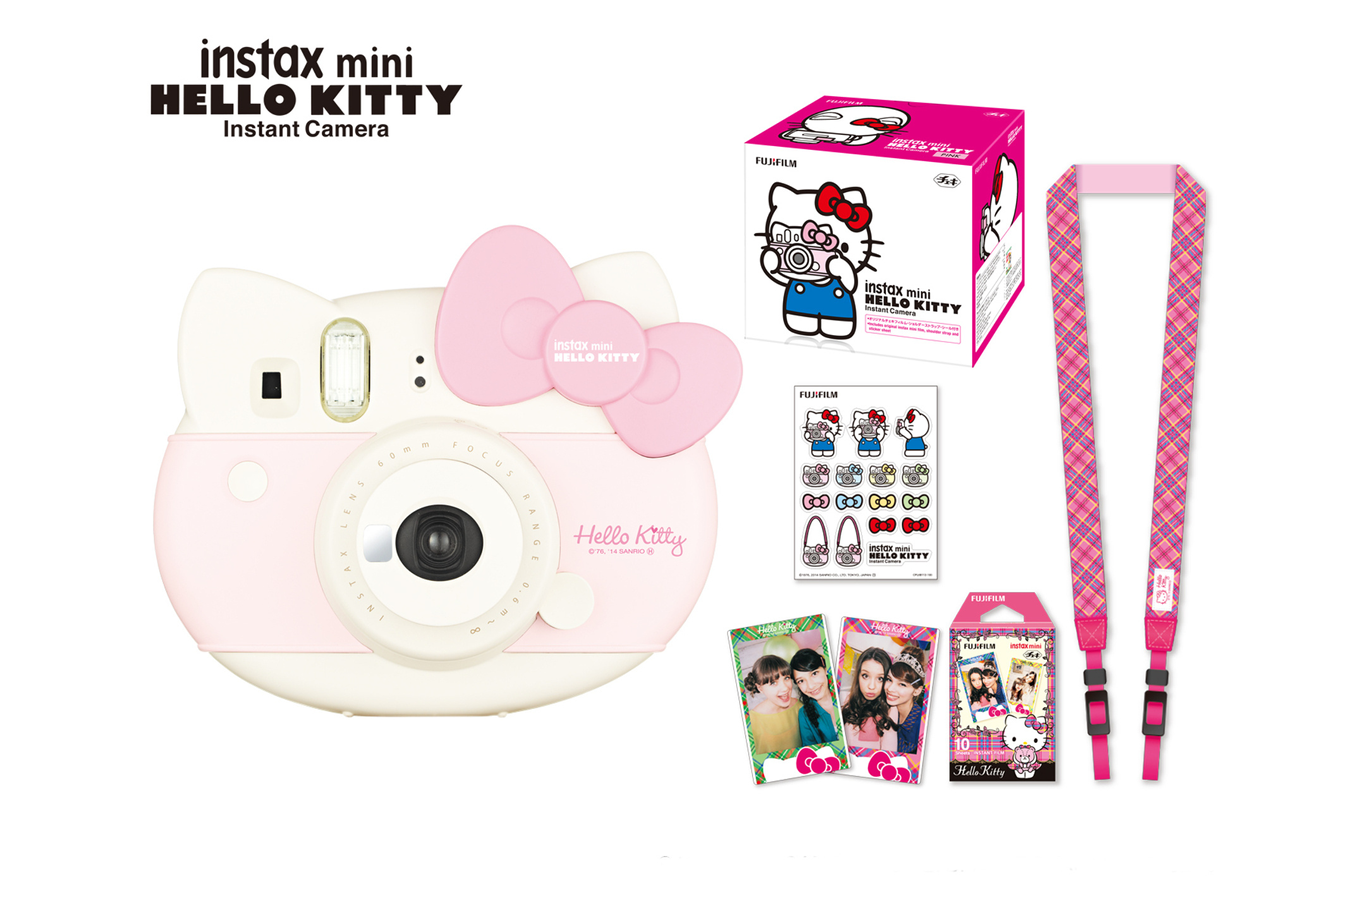 appareil photo instantan fujifilm instax mini pack hello kitty 4064216 darty. Black Bedroom Furniture Sets. Home Design Ideas